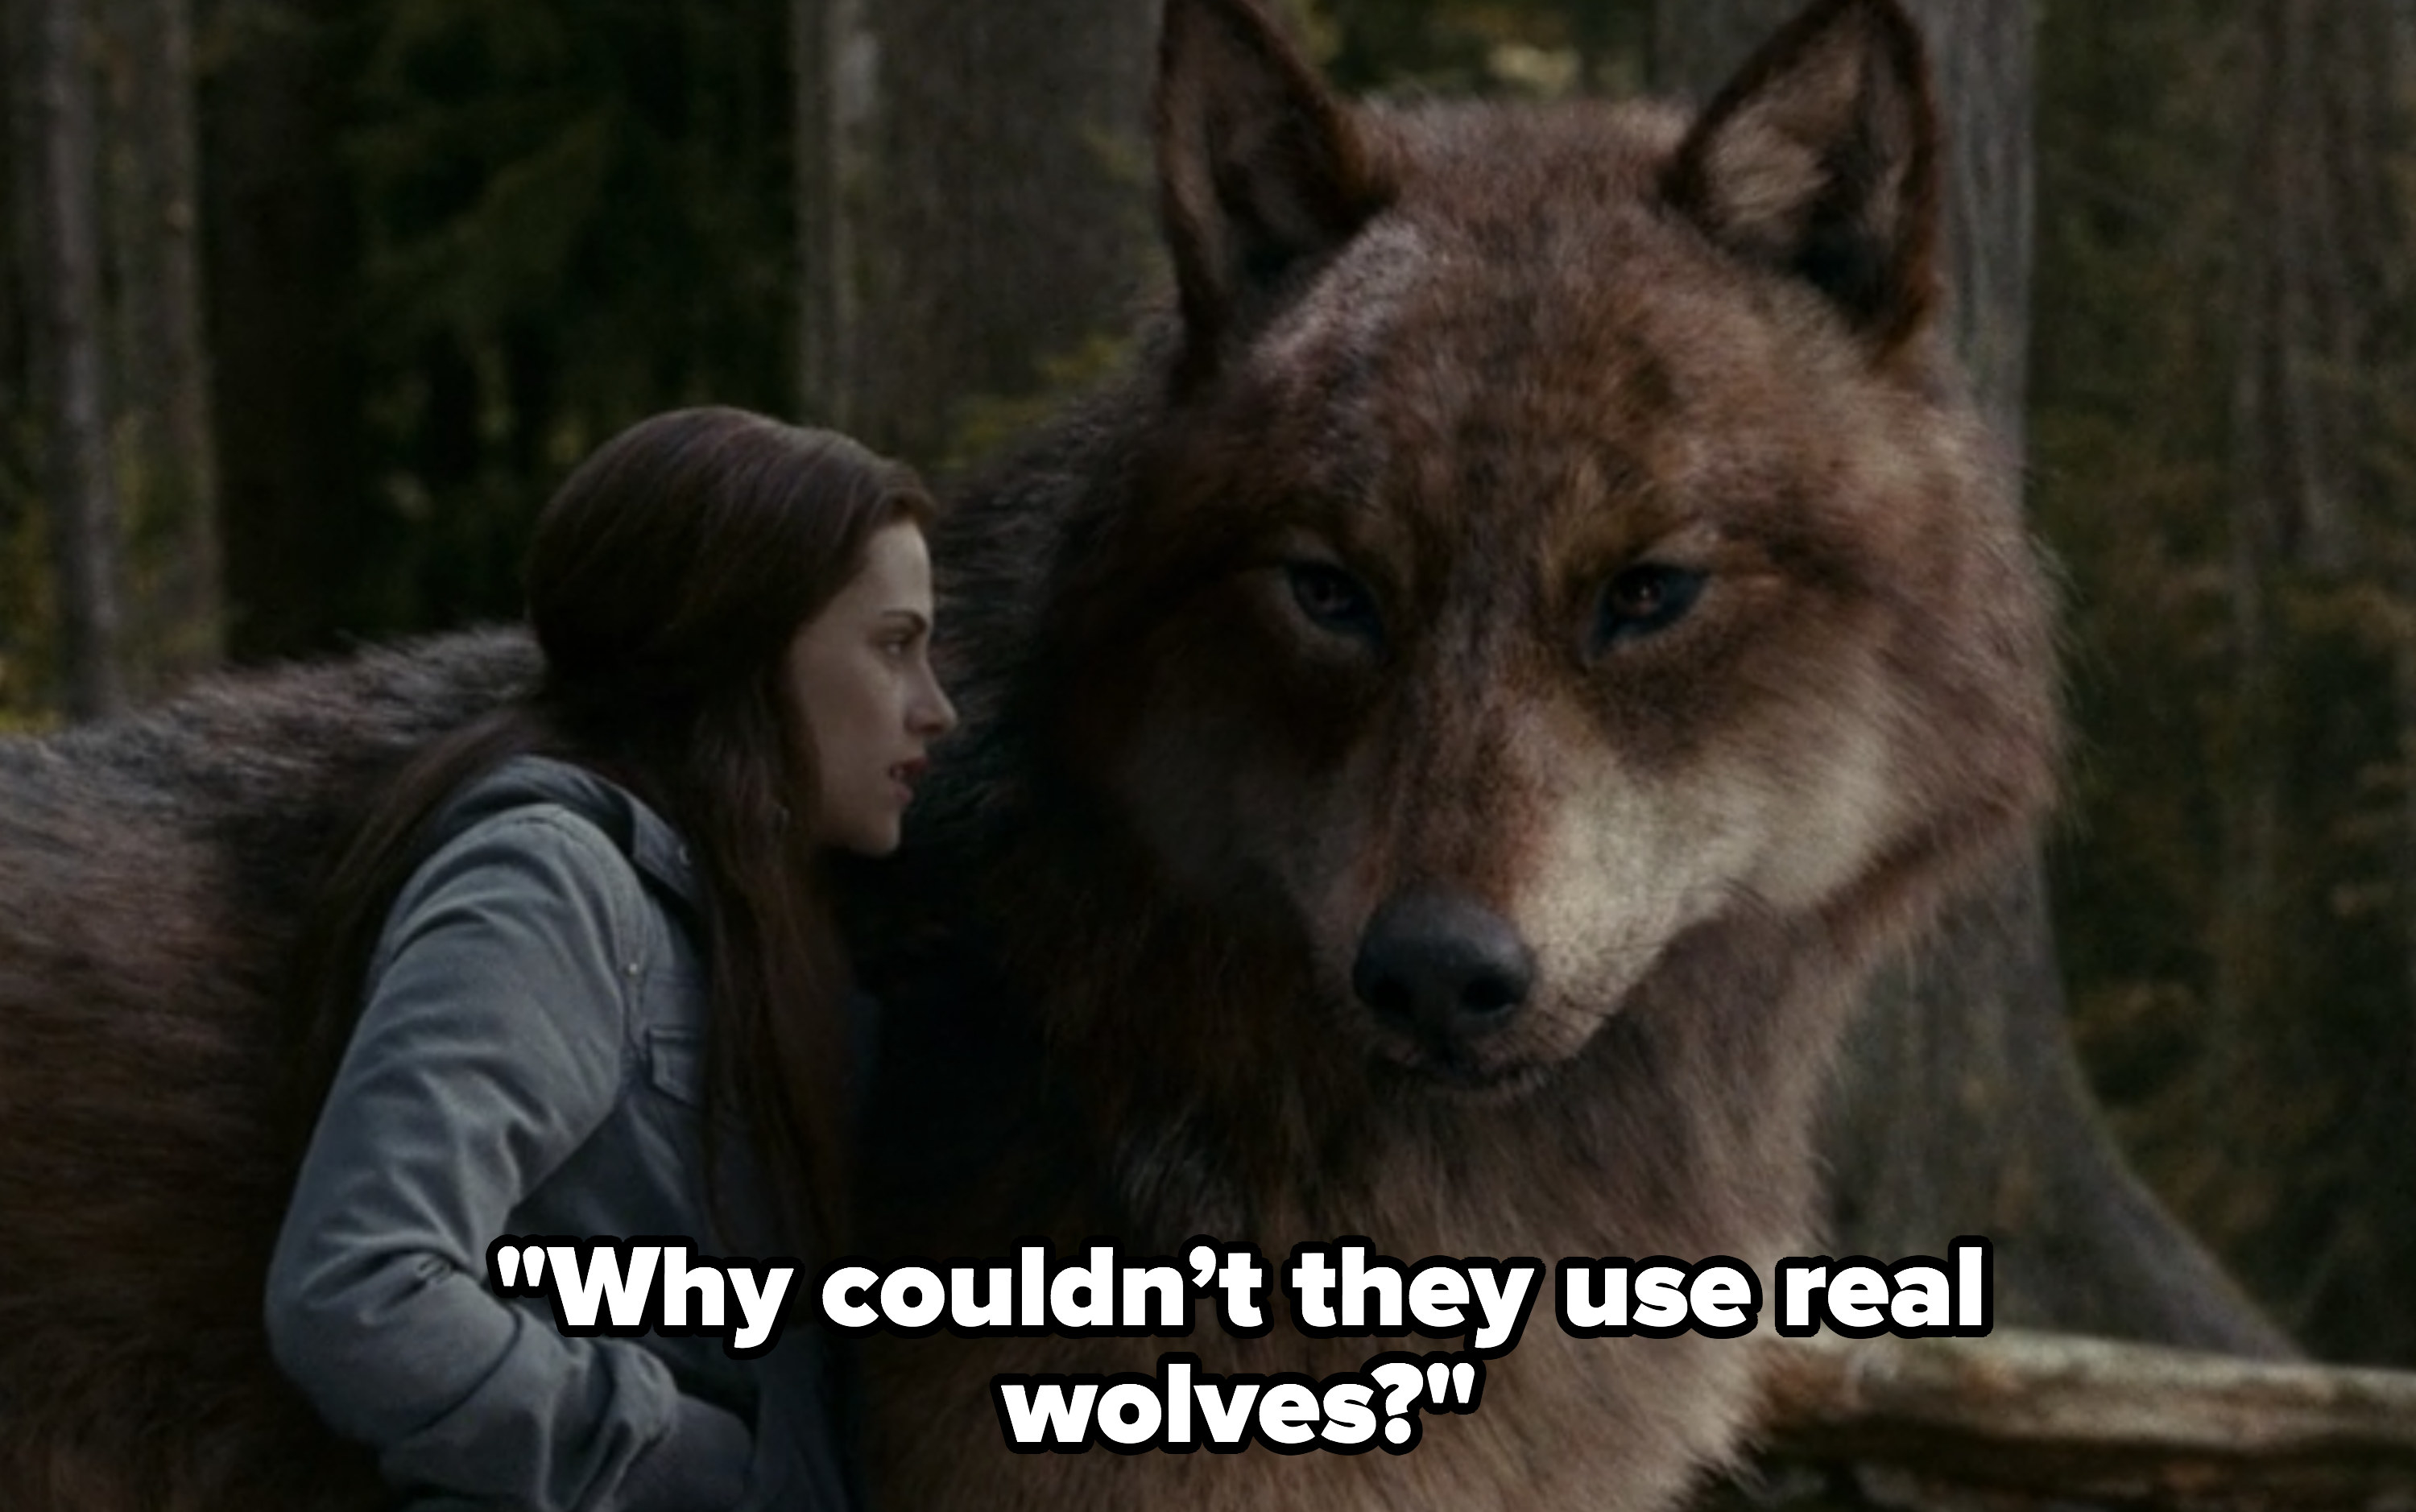 Jacob as a CGI wolf with Bella. Rob: Why couldn't they use real wolves?